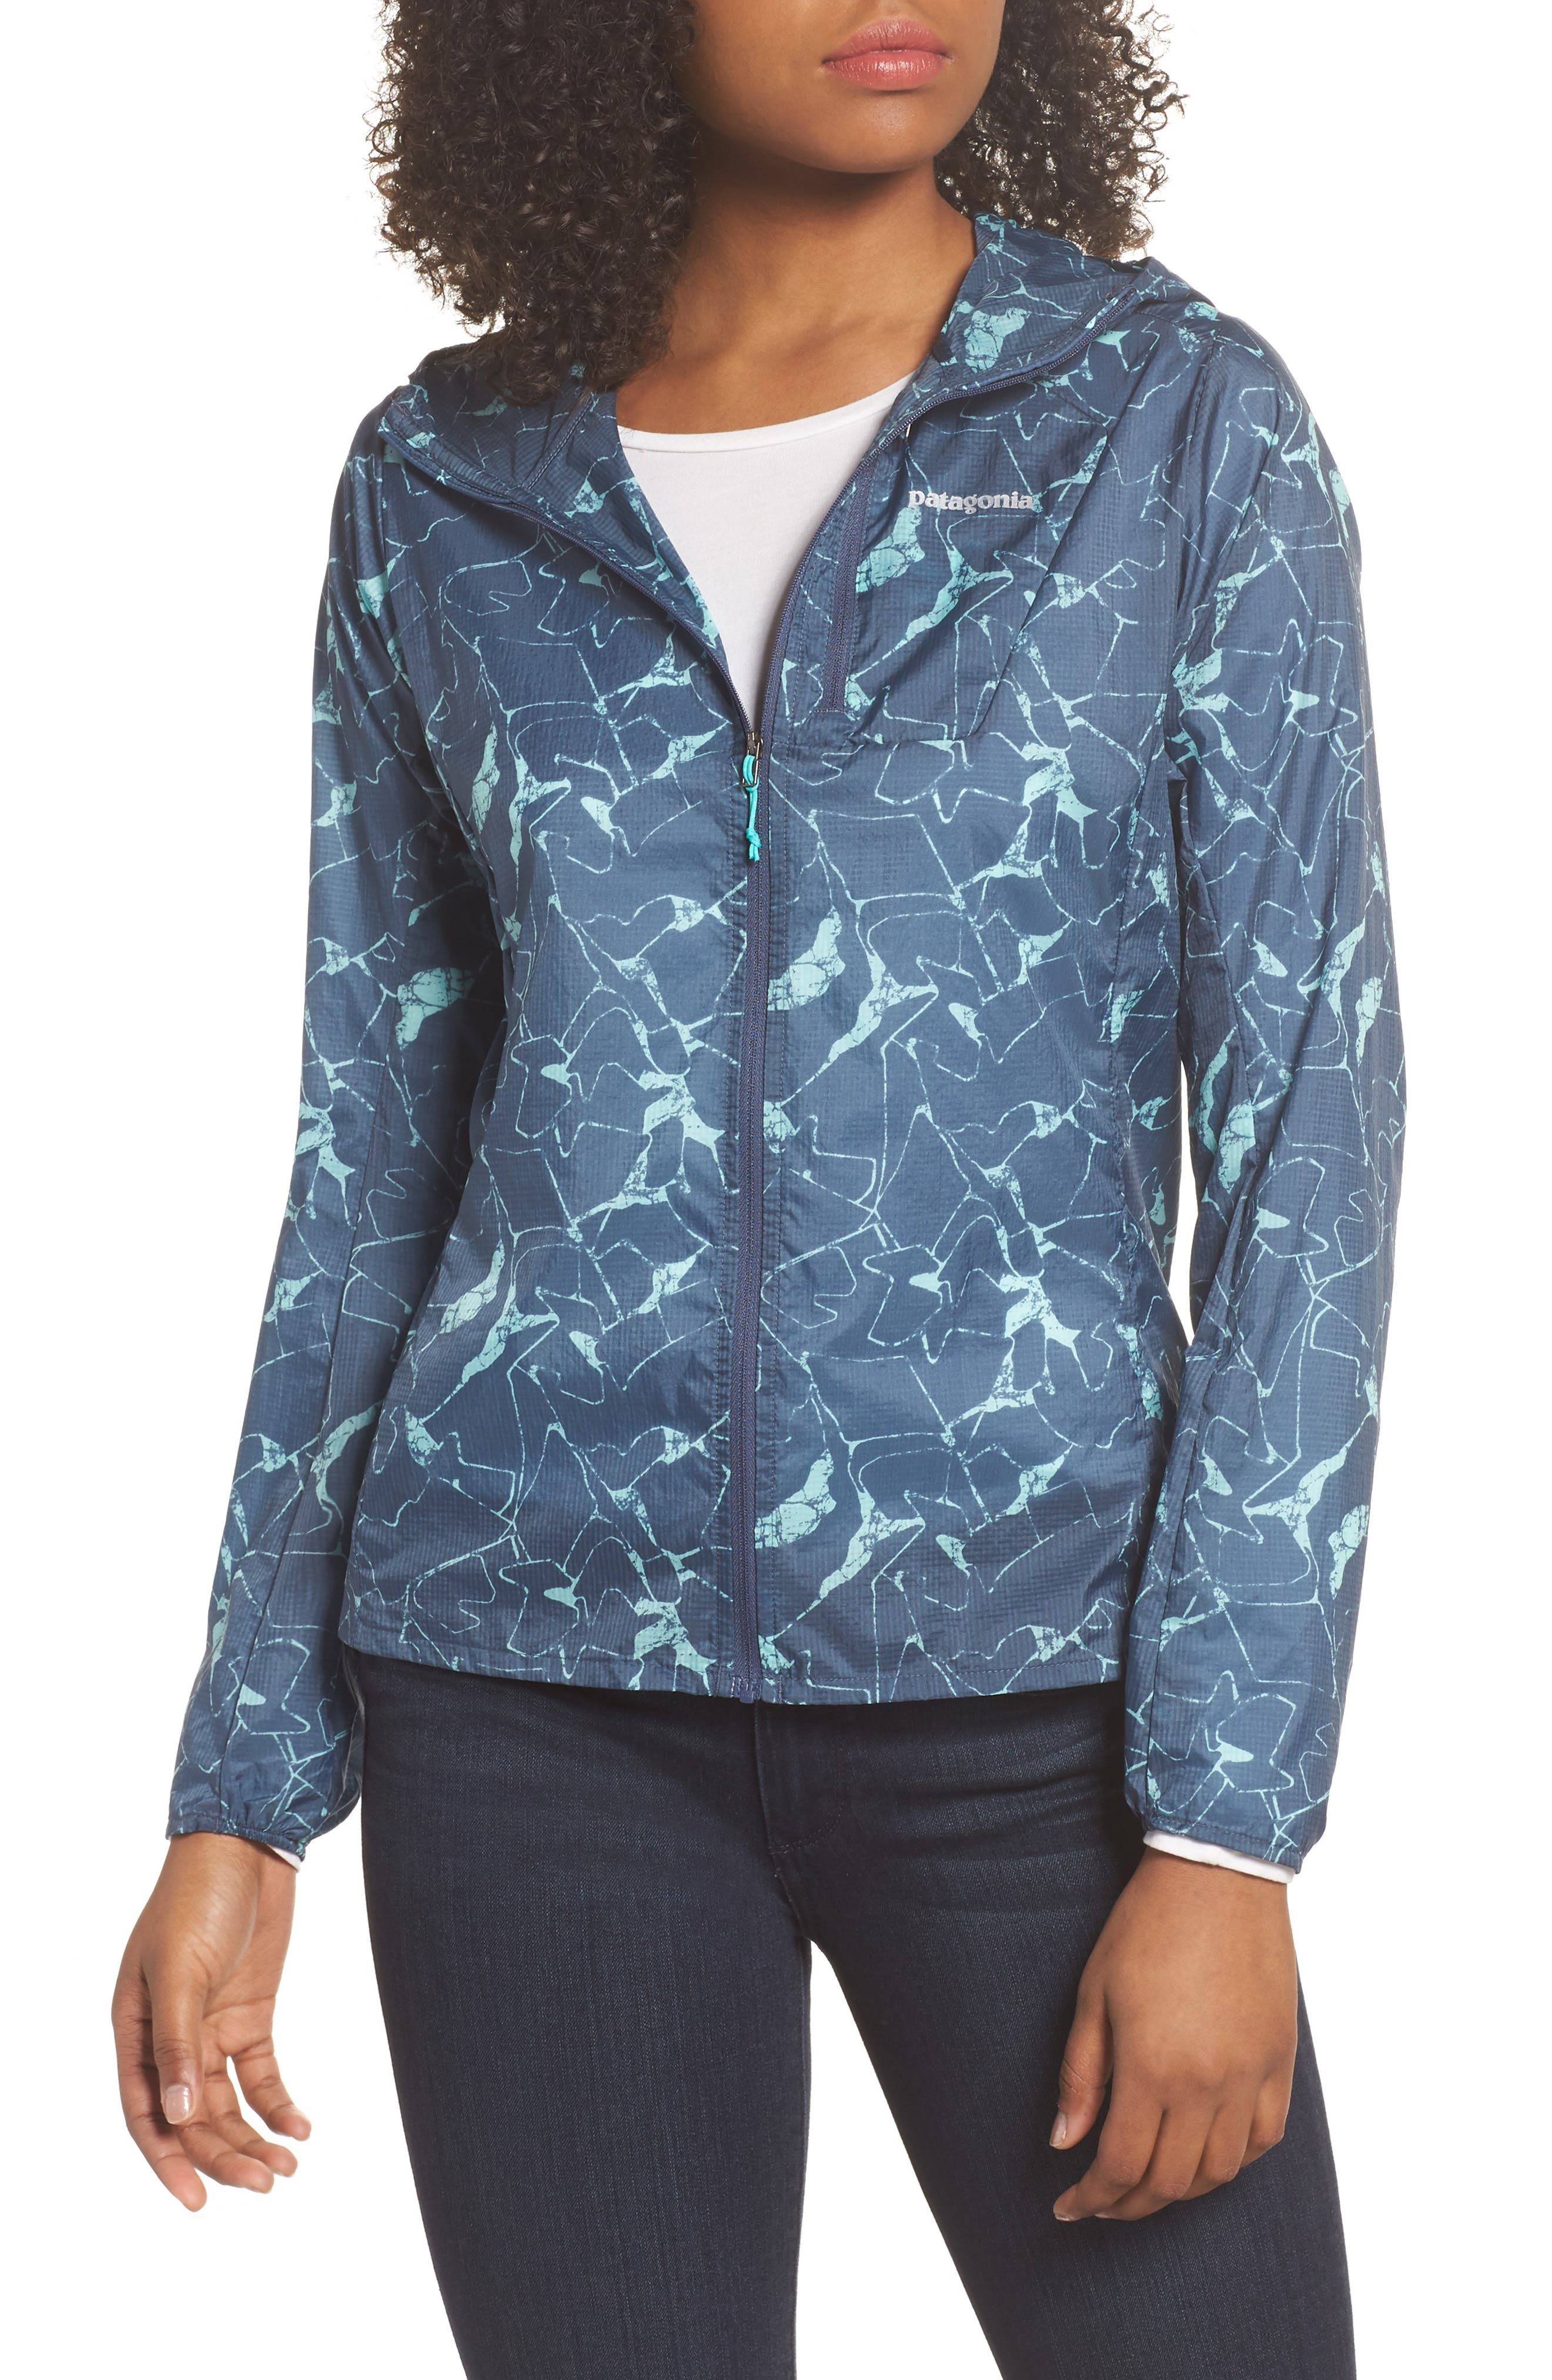 Houdini Water Repellent Jacket,                         Main,                         color, Rock Jigsaw/ Dolomite Blue